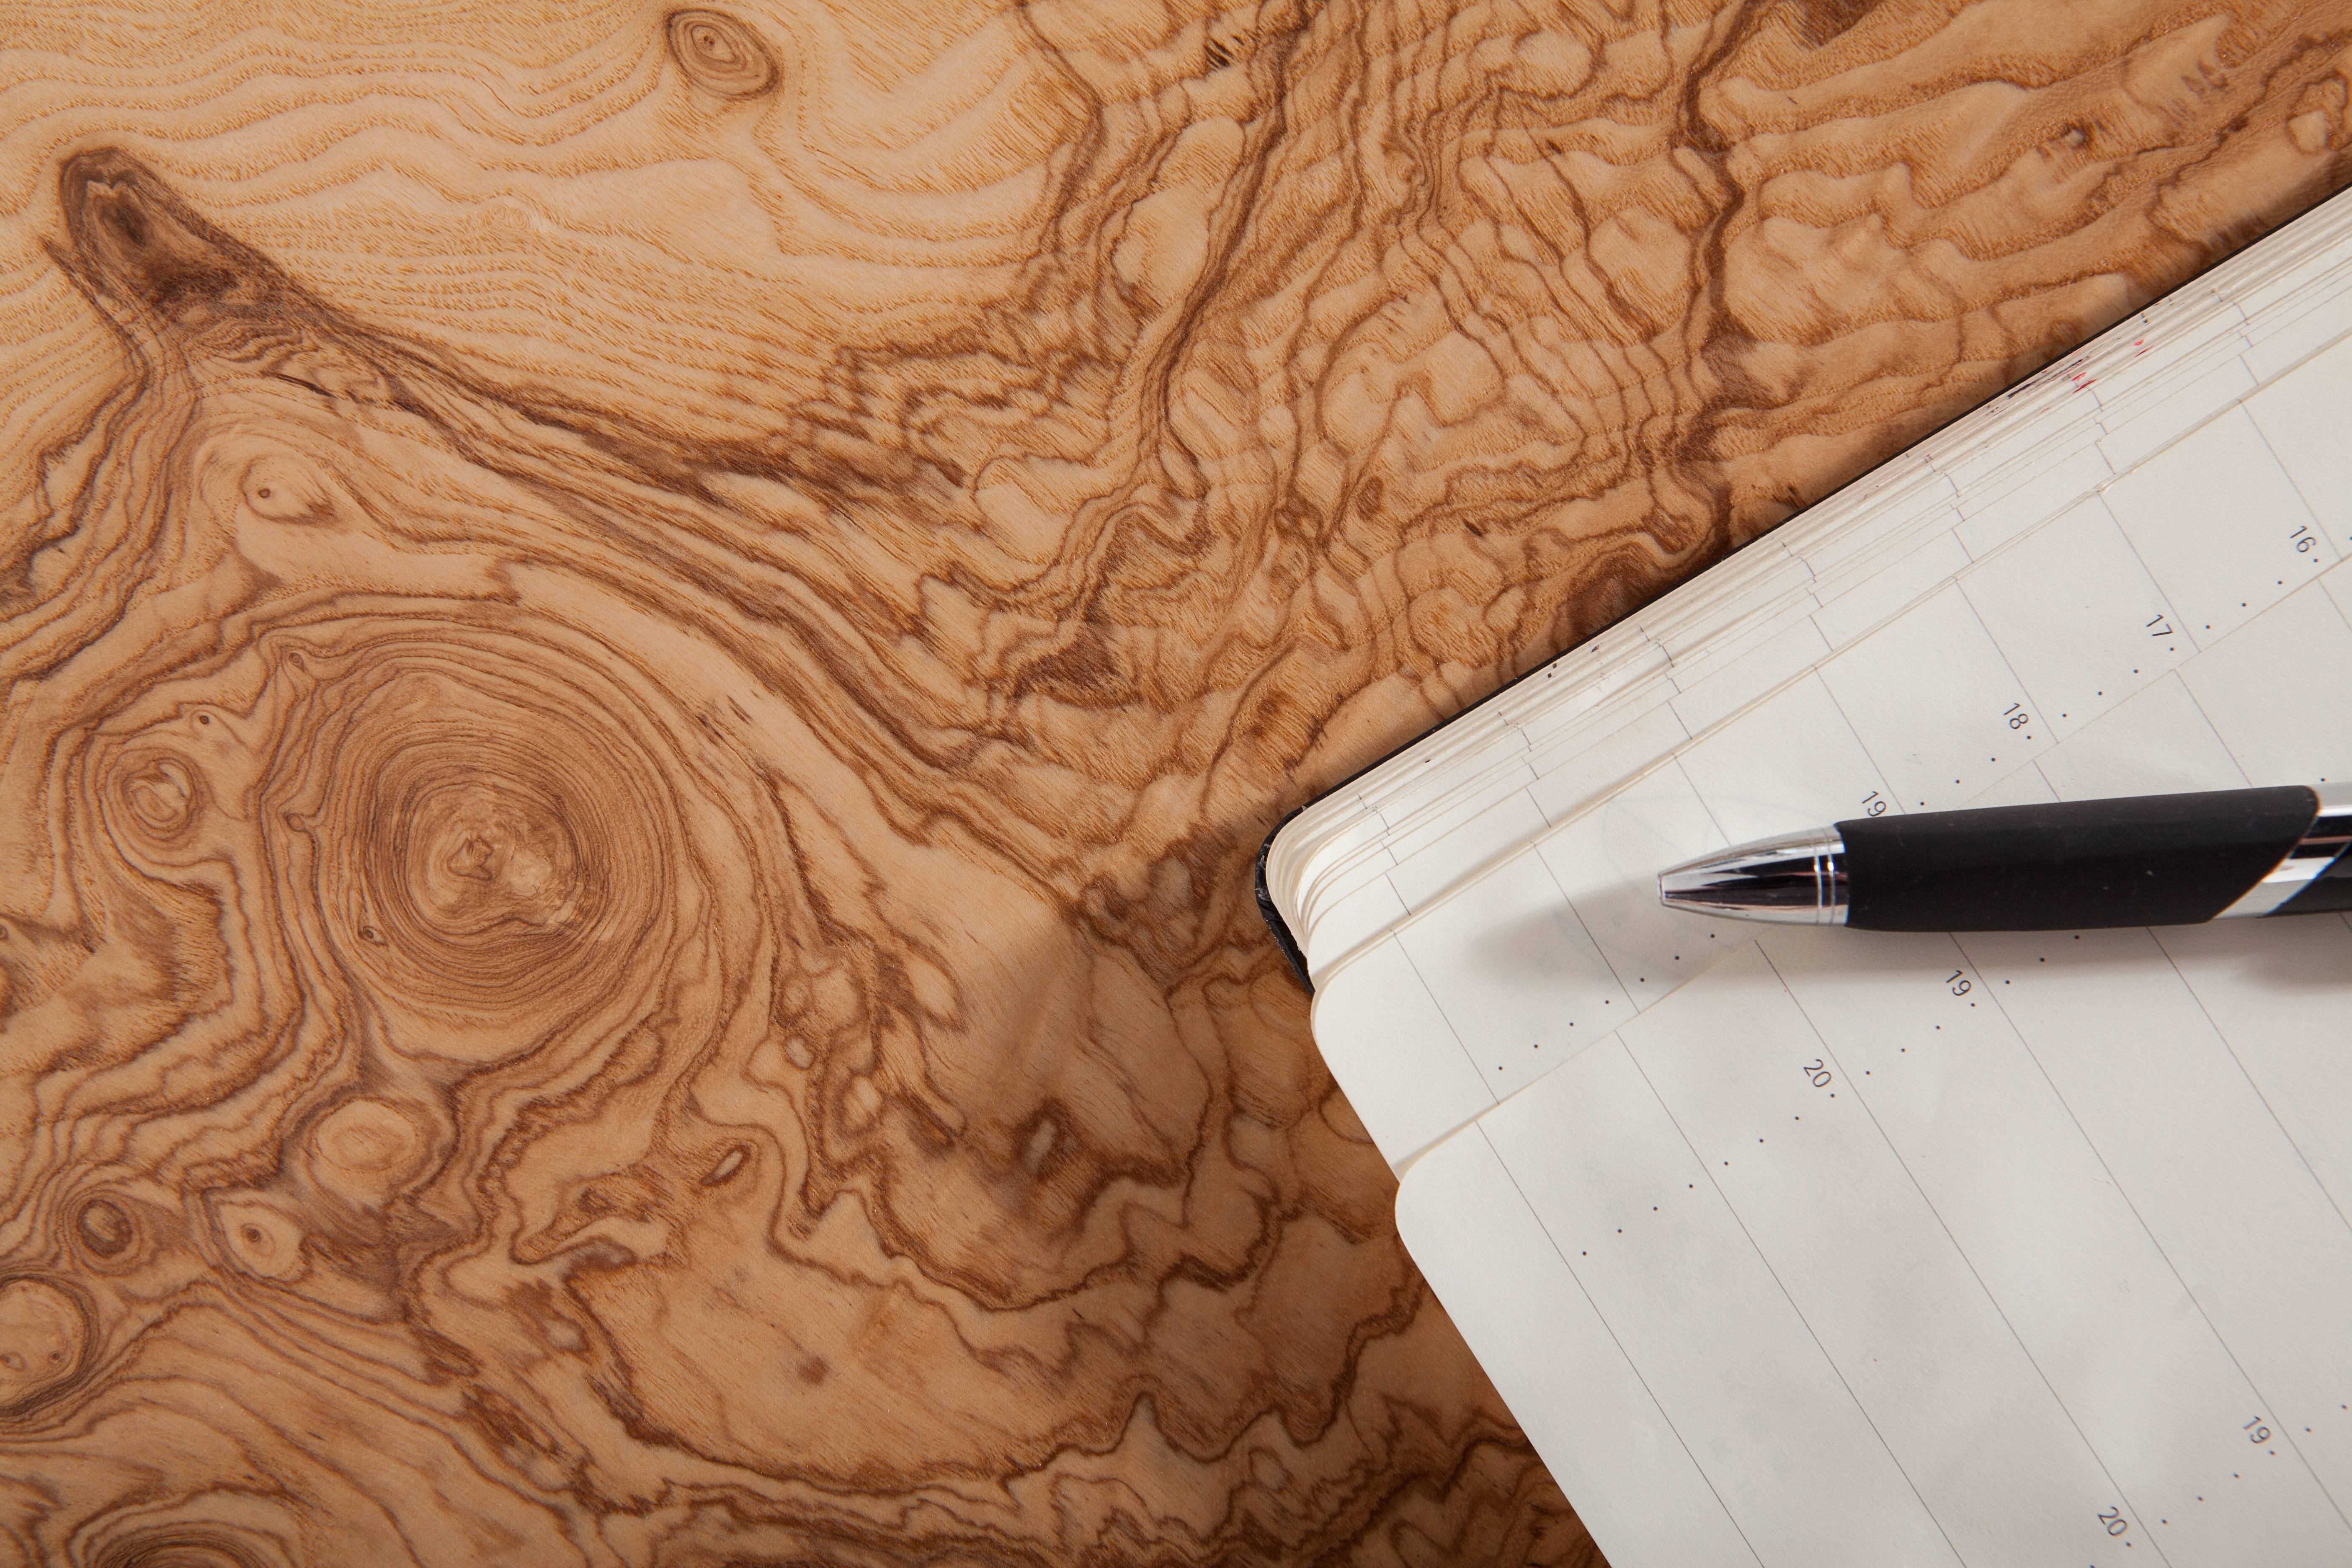 Exquisite unpolished veneer with fountain pen and diary for our bespoke furniture commissions